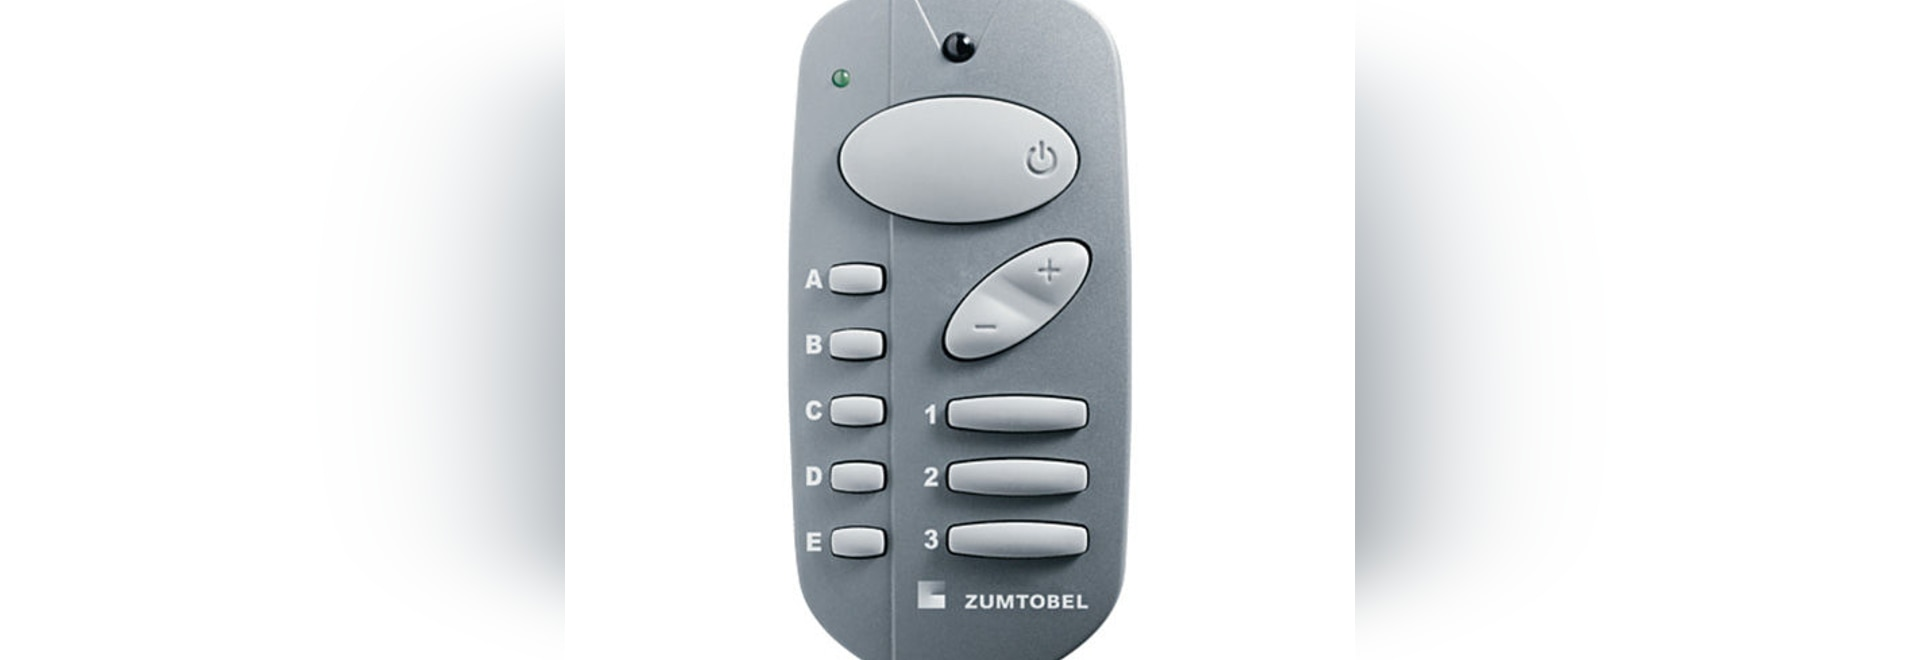 new remote control light dimmer switch by zumtobel